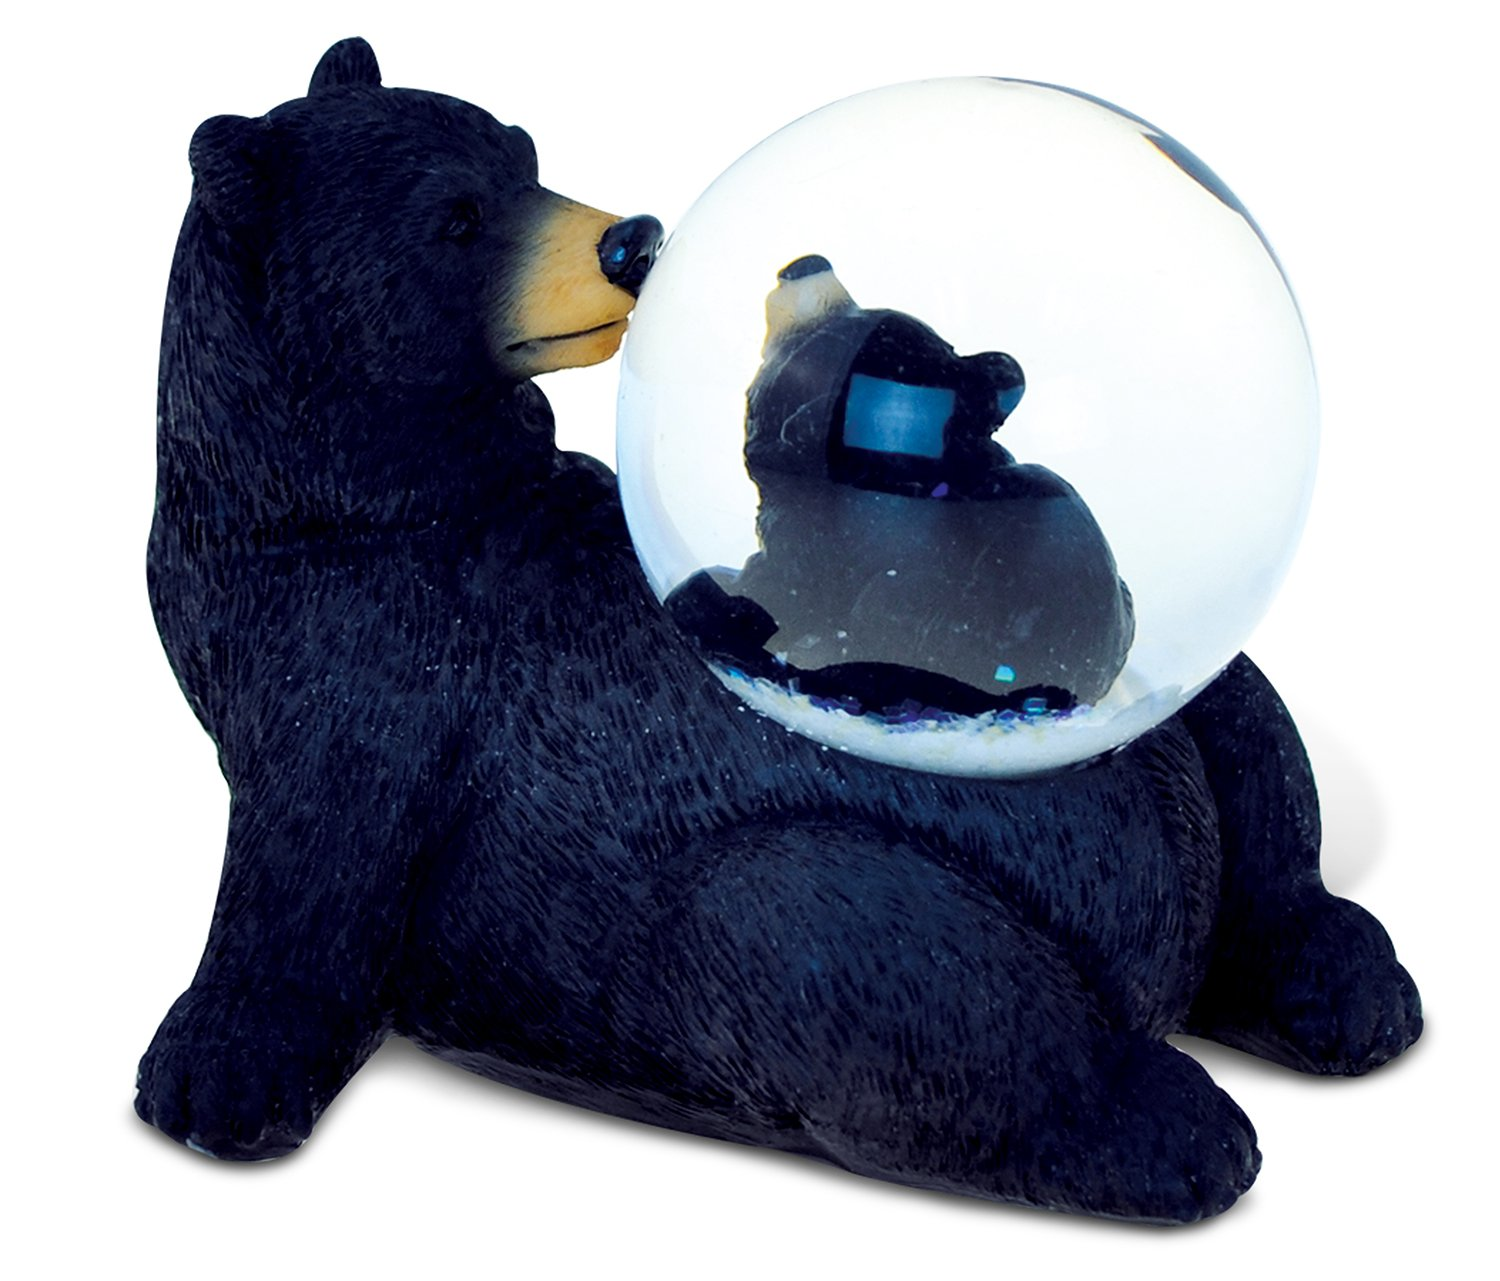 Puzzled Black Bear (45MM) Resin Stone Finish Snow Globe - Animal Theme - Unique Elegant Gift and Souvenir - Item #9481